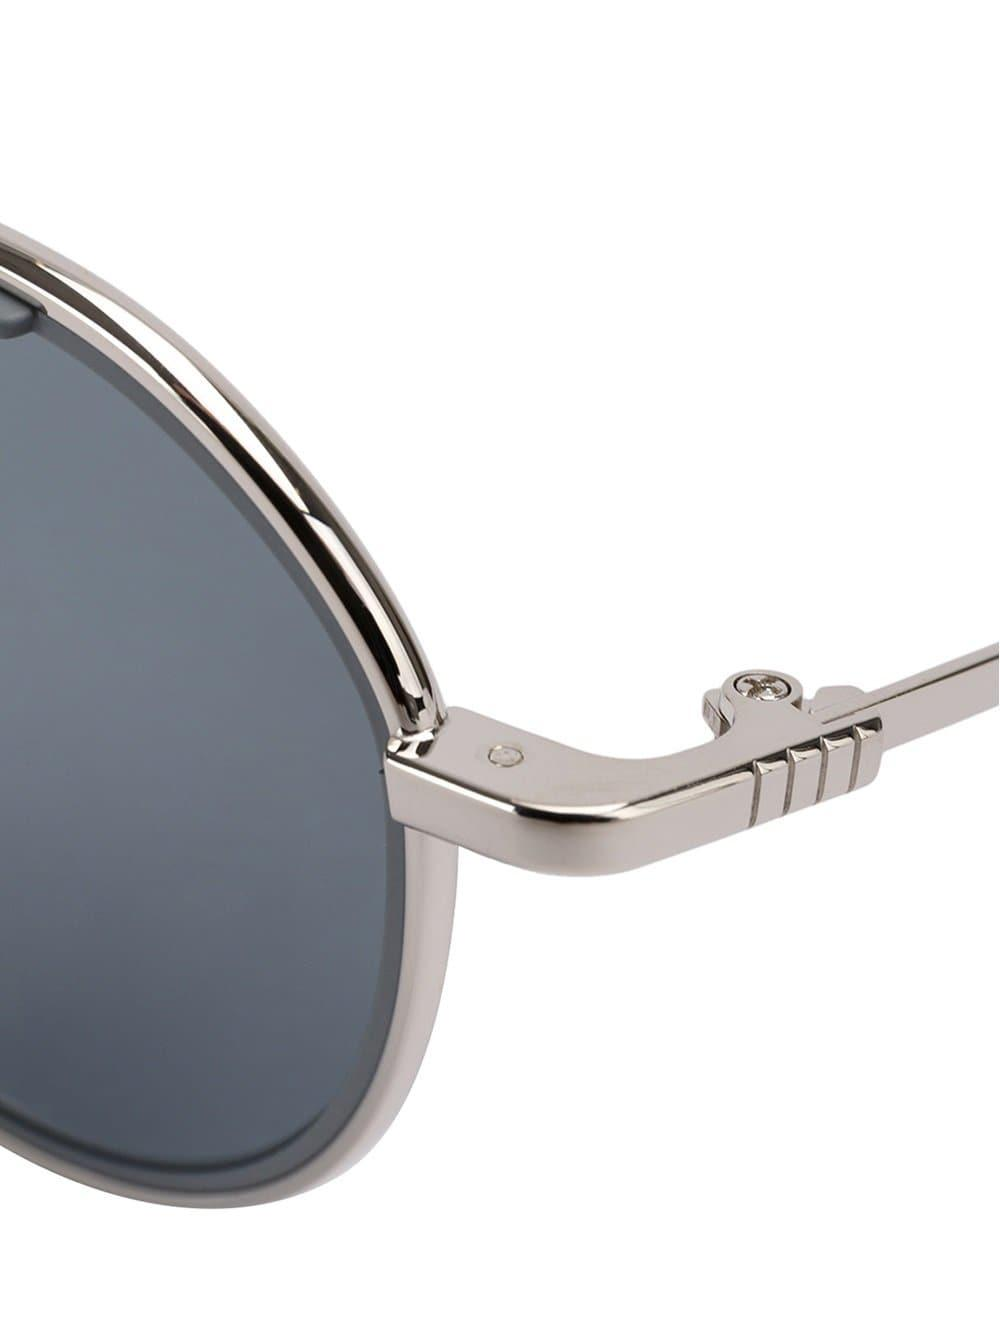 Thom Browne Silver & Matte Grey Sunglasses in Grey